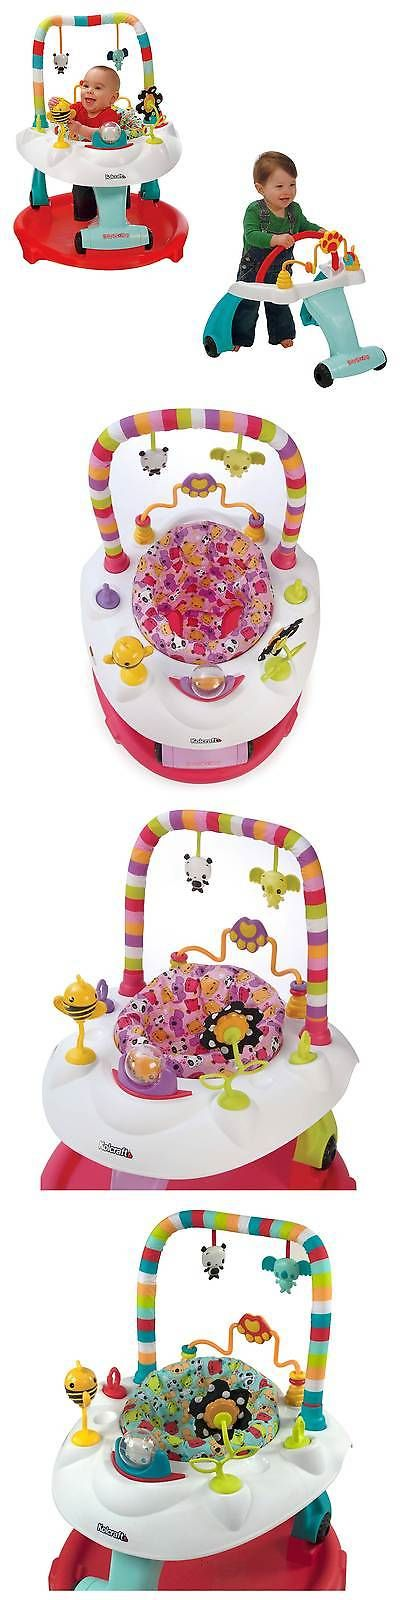 Activity Centers 20413: Kolcraft Baby Sit And Step 2-1 Activity Center ->